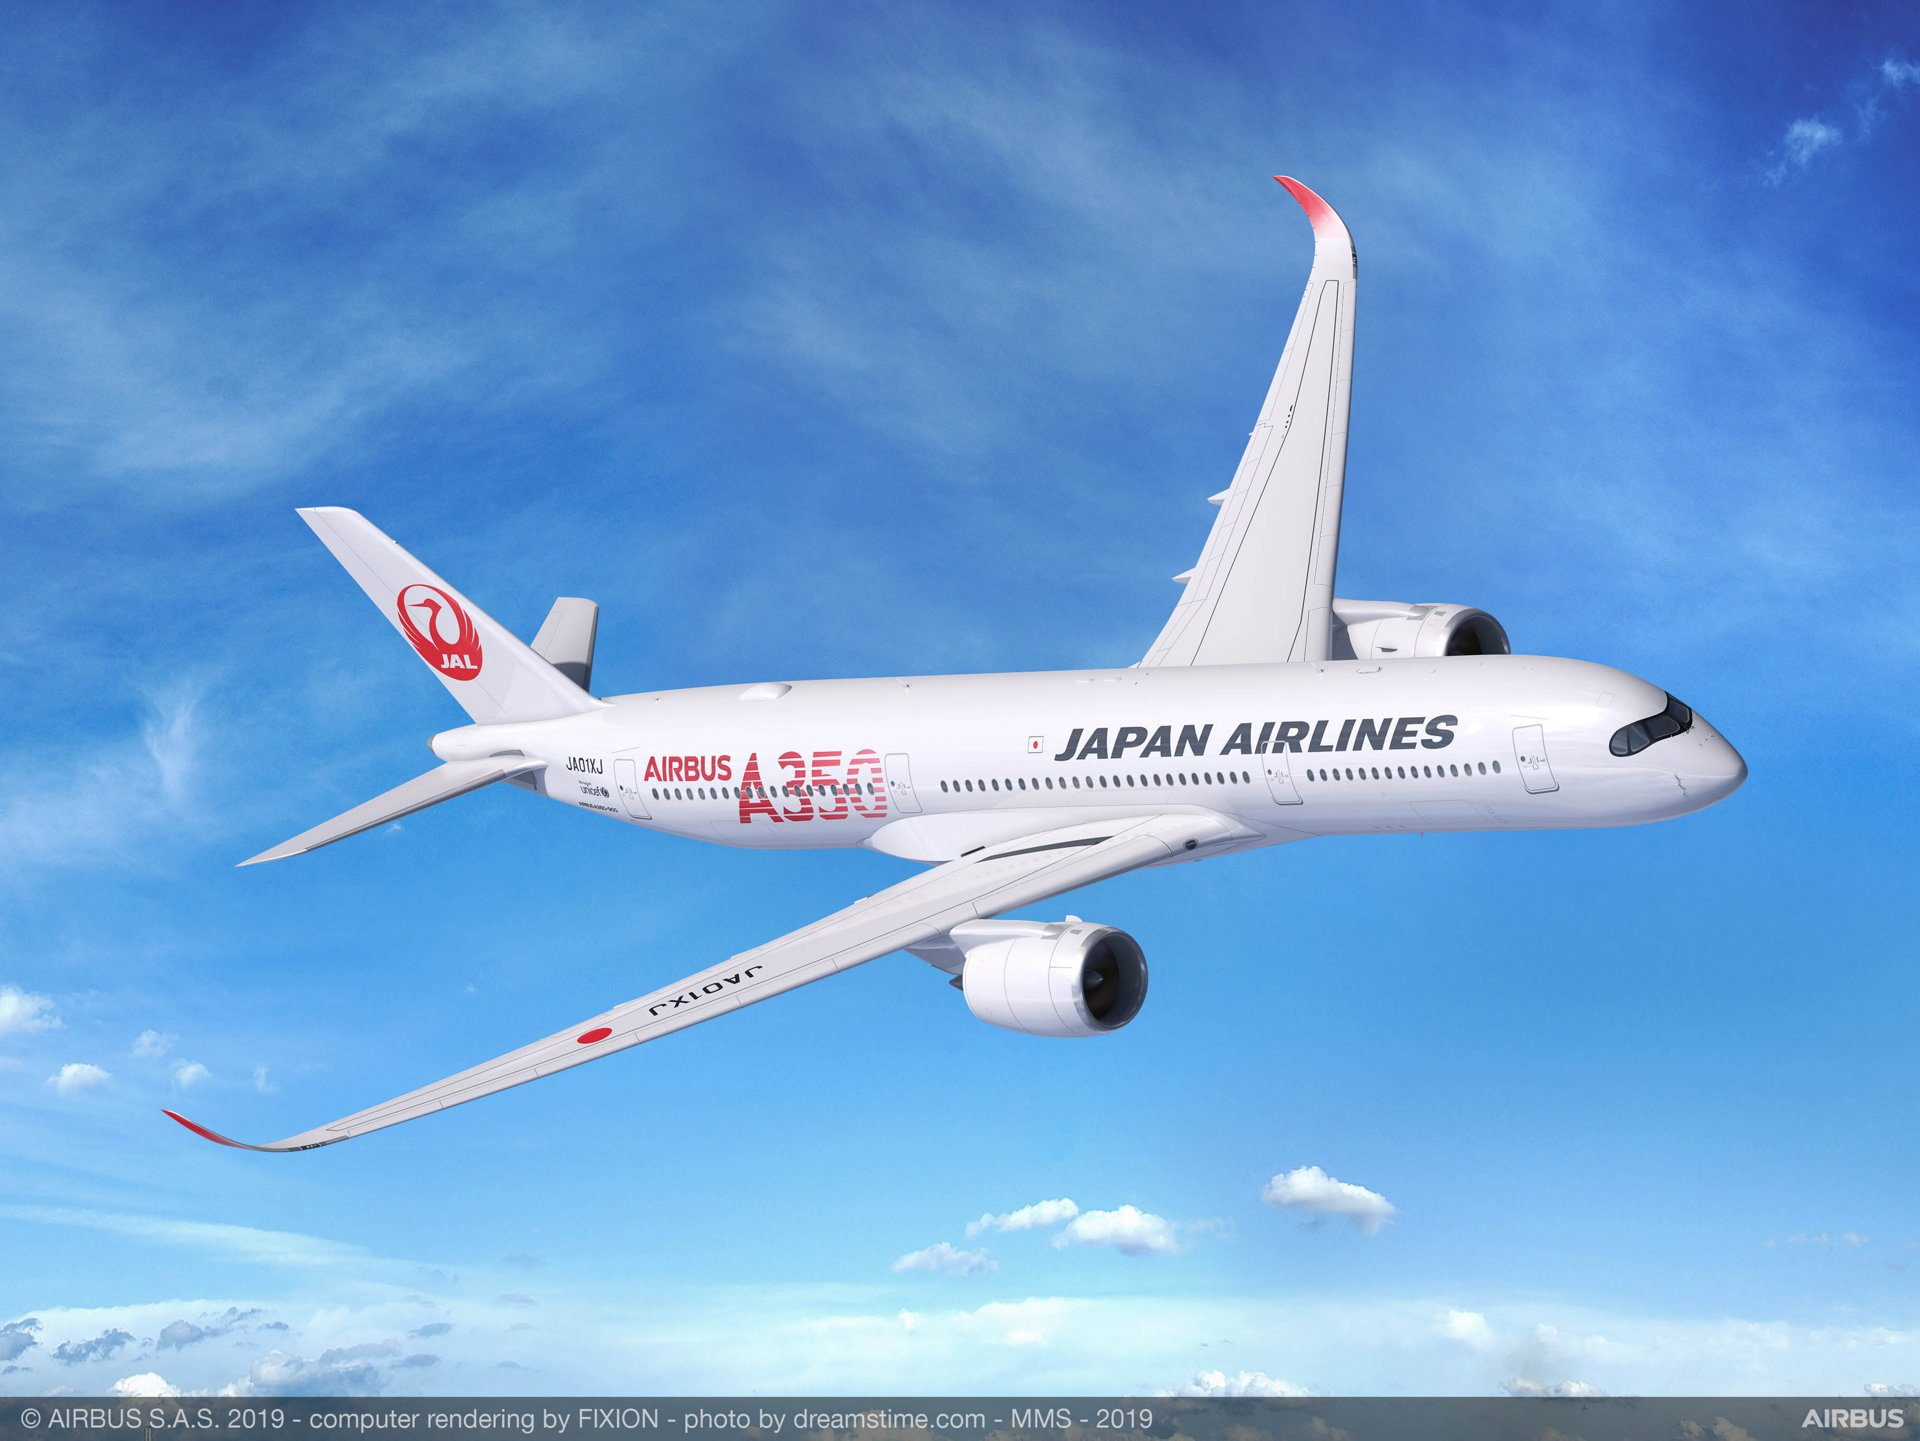 A350 XWB Receives Type Certificate from Transport Ministry of Japan